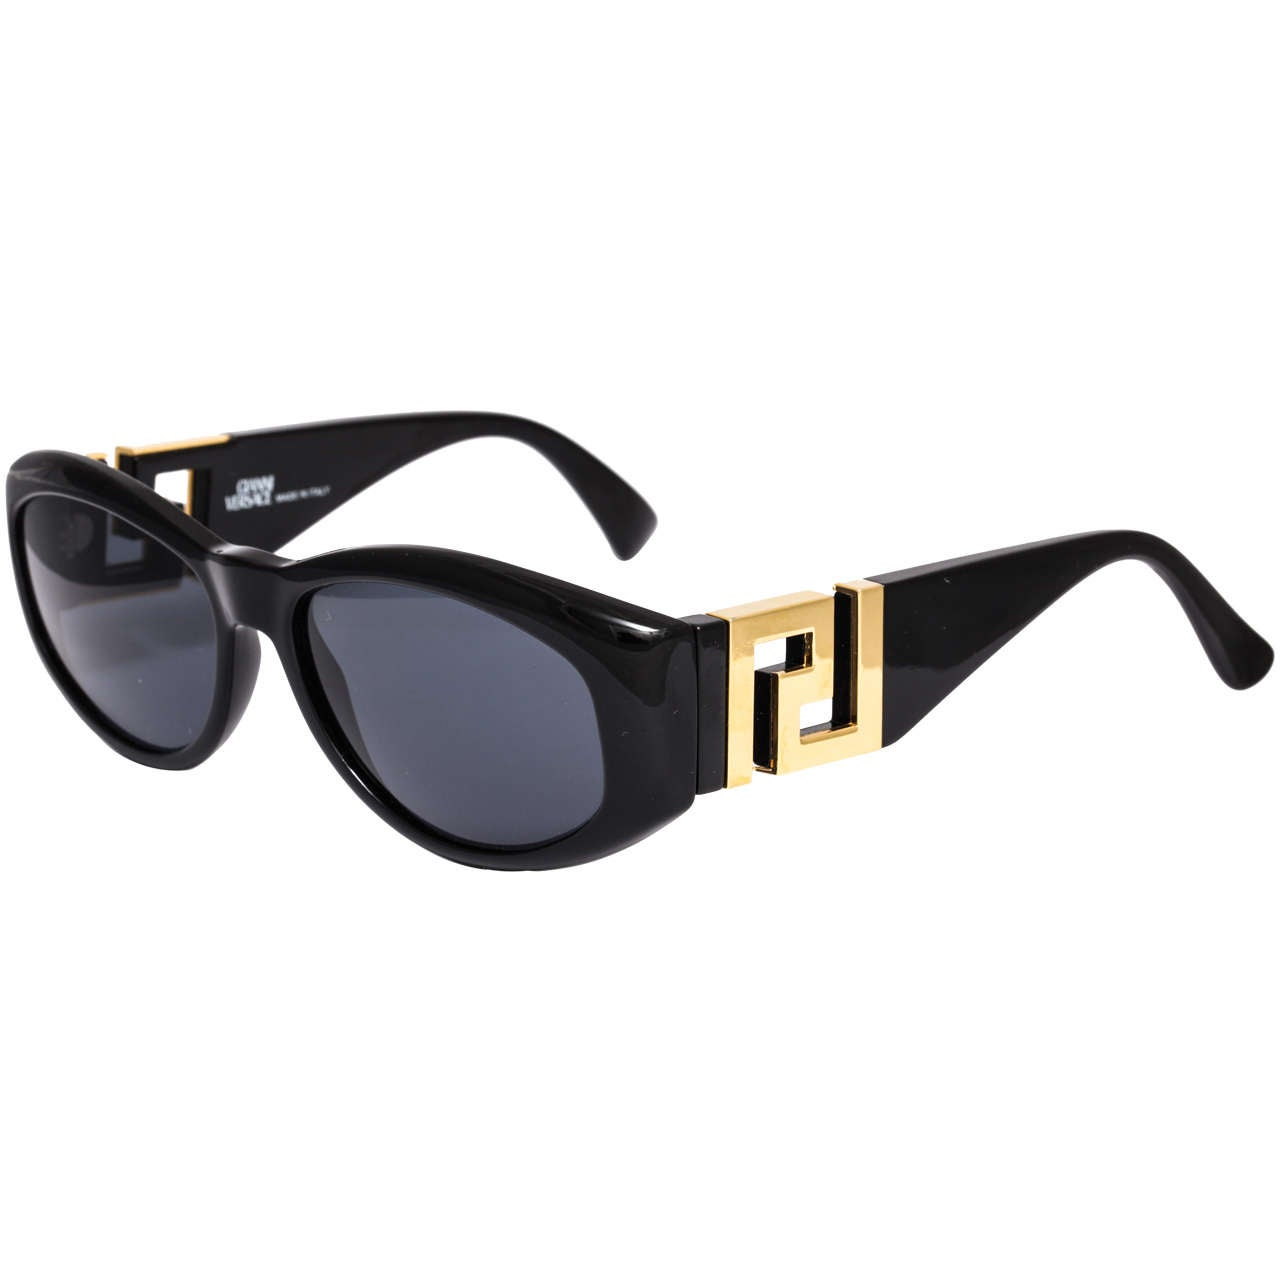 fabcf660766 Vintage Gianni Versace Sunglasses Mod T24 Col 852 For Sale at 1stdibs